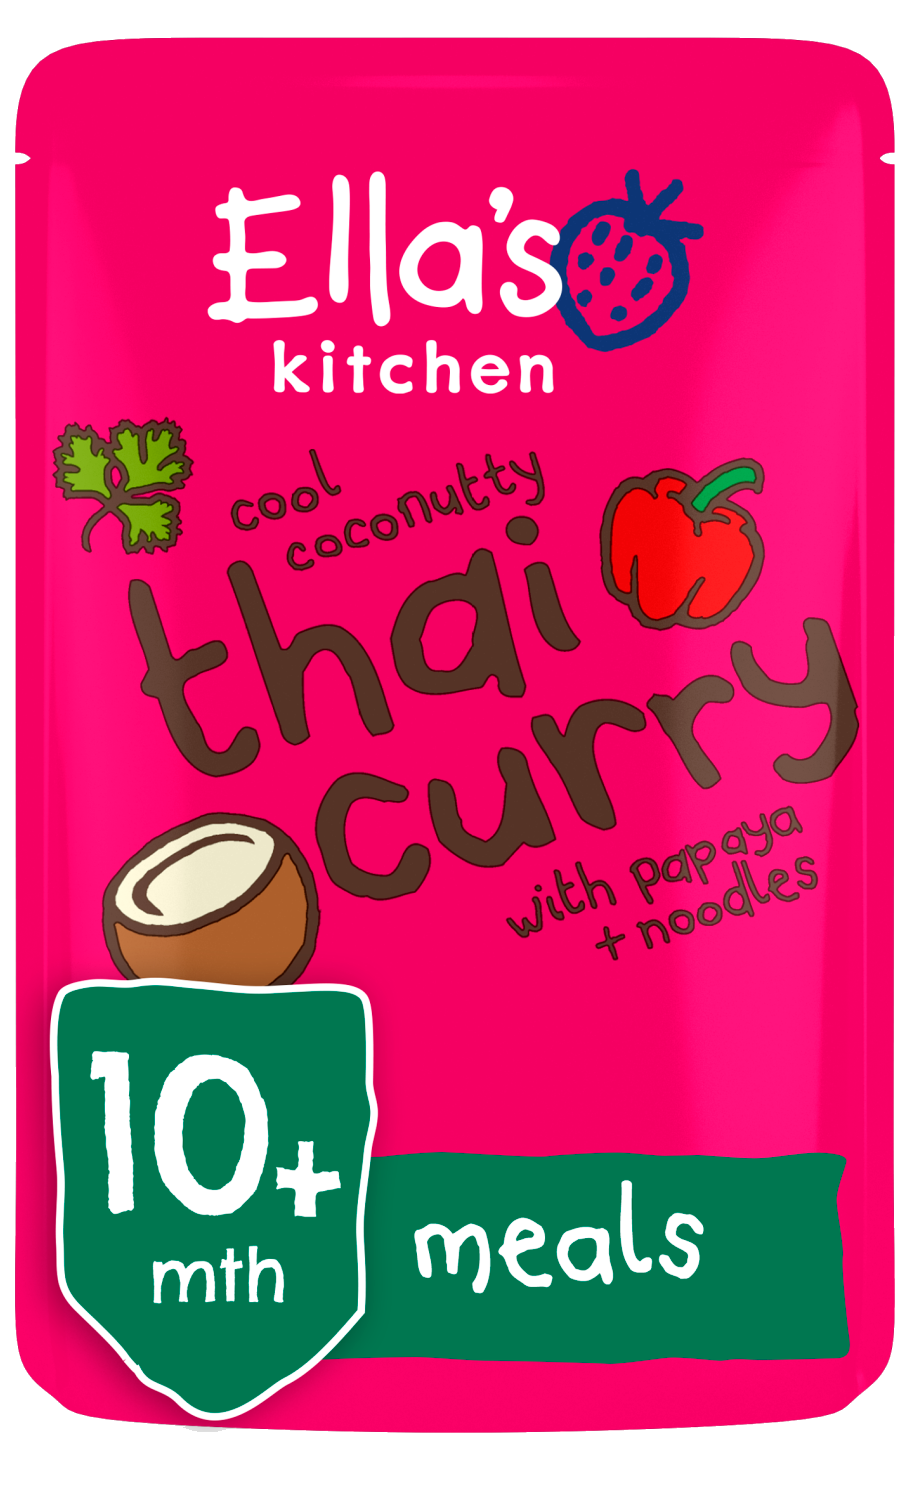 Ellas kitchen thai curry papaya noodles pouch 10 months front of pack O